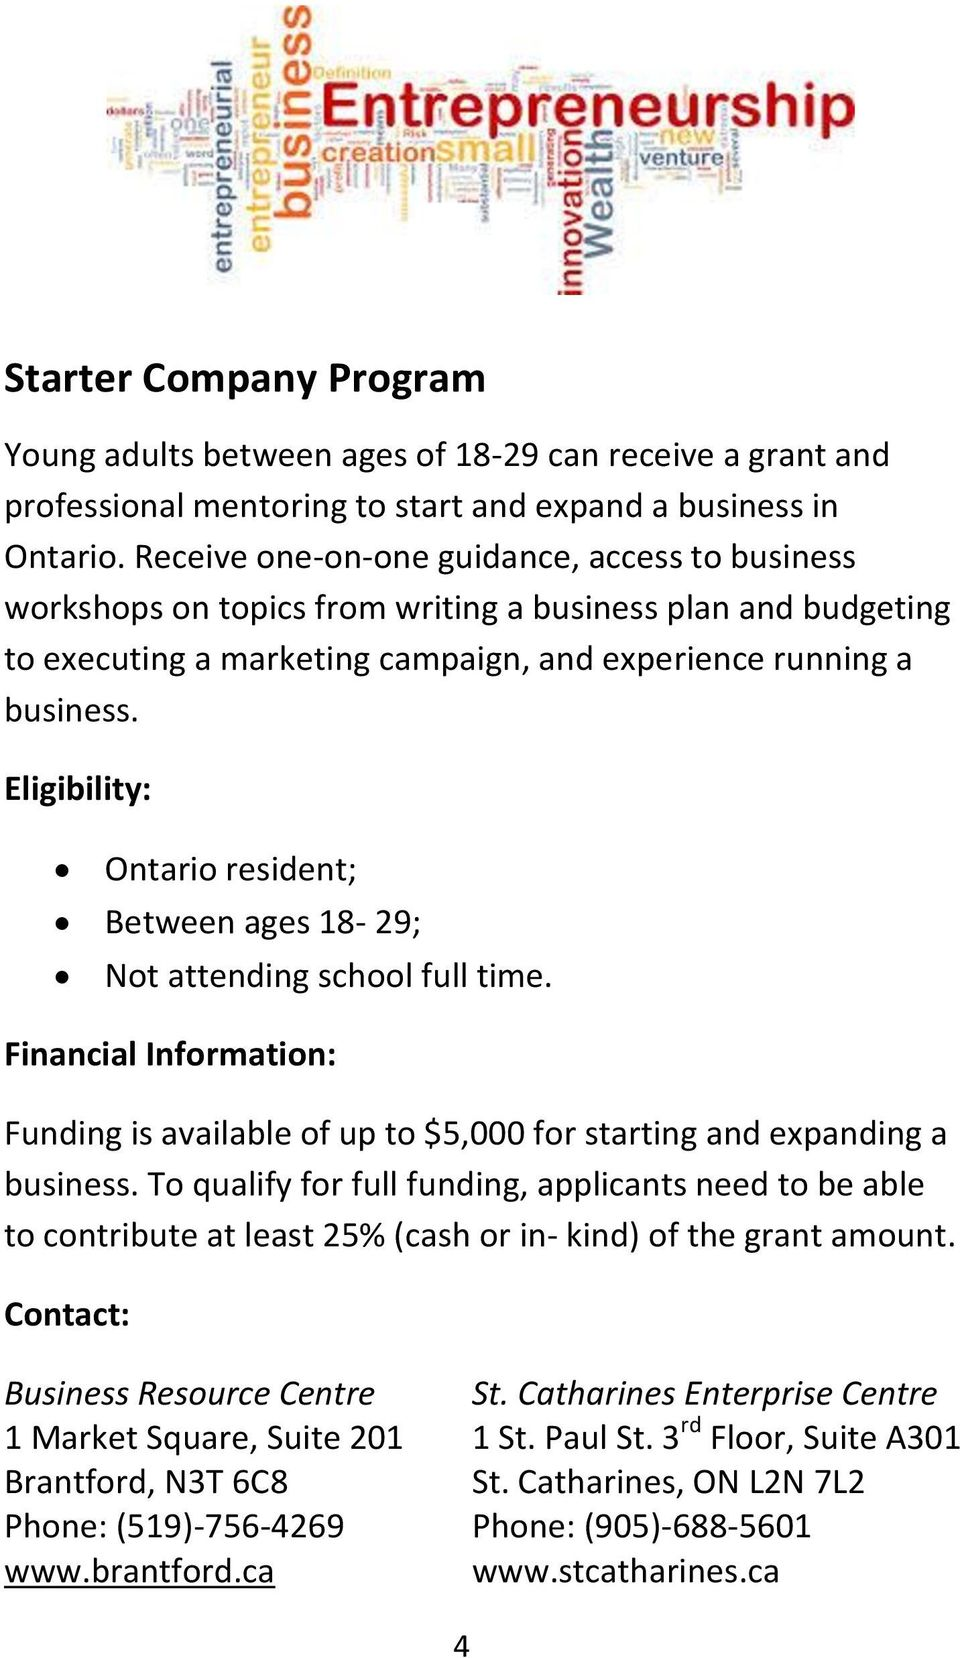 Eligibility: Ontario resident; Between ages 18-29; Not attending school full time. Financial Information: Funding is available of up to $5,000 for starting and expanding a business.